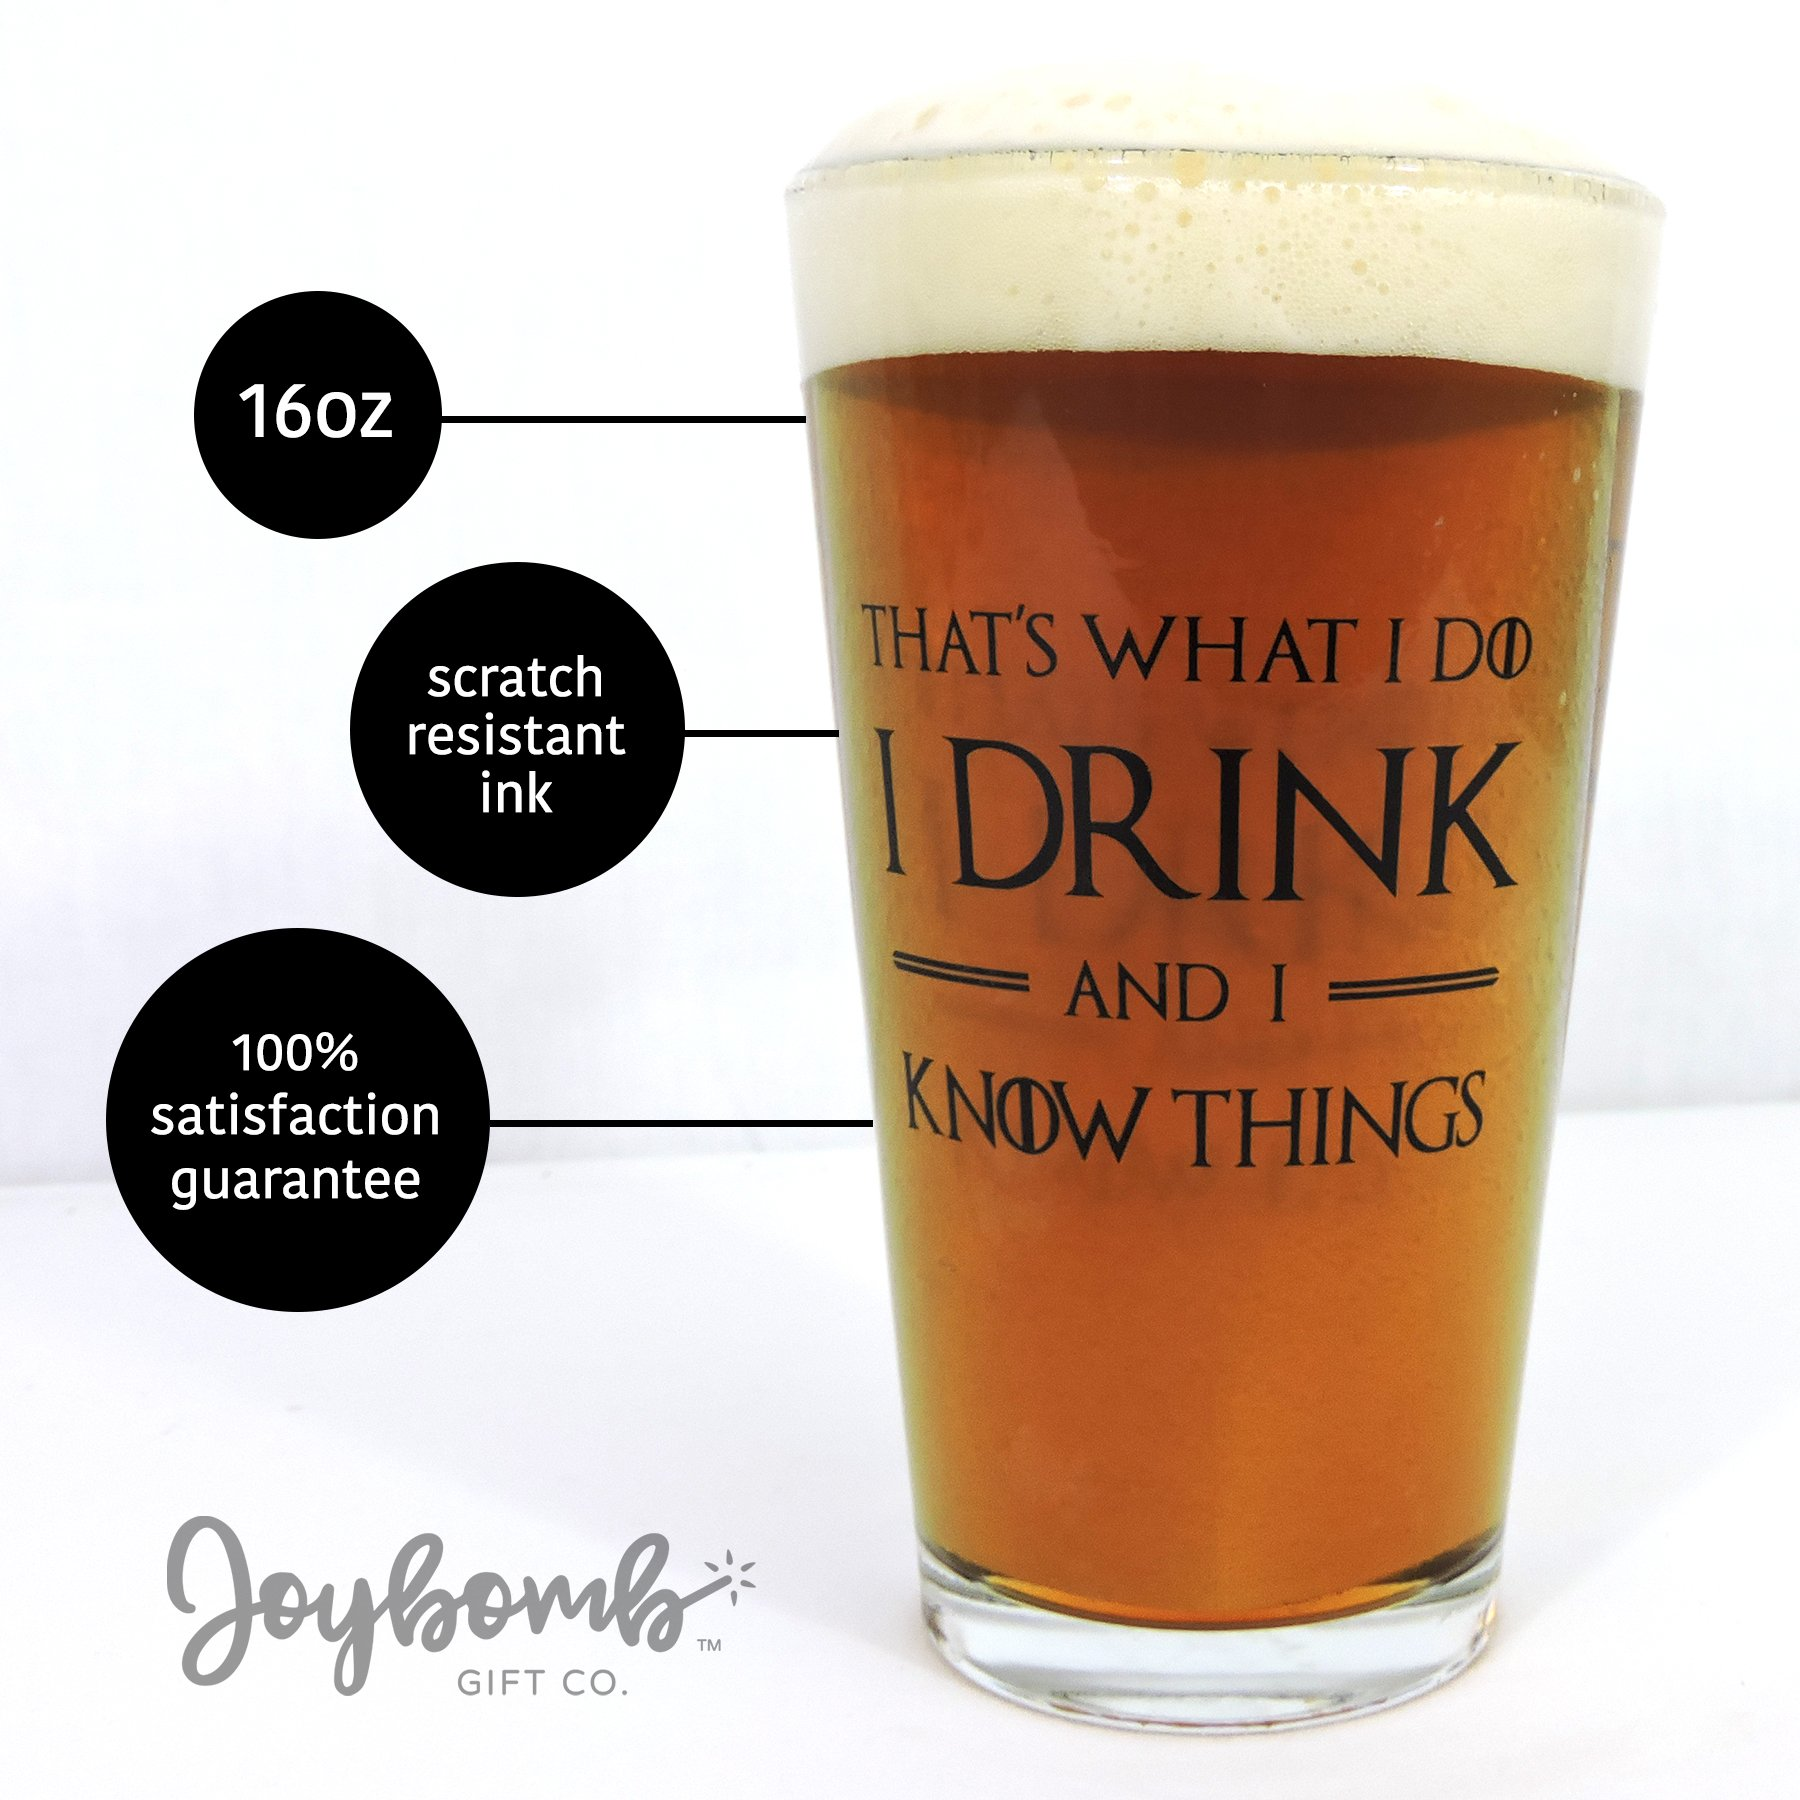 I Drink and I Know Things: Beer Glass - Perfect gift for Game of Thrones fans - Tyrion Lannister Mug Cup - 16oz - Made in USA by Joybomb Gift Co. (Image #3)